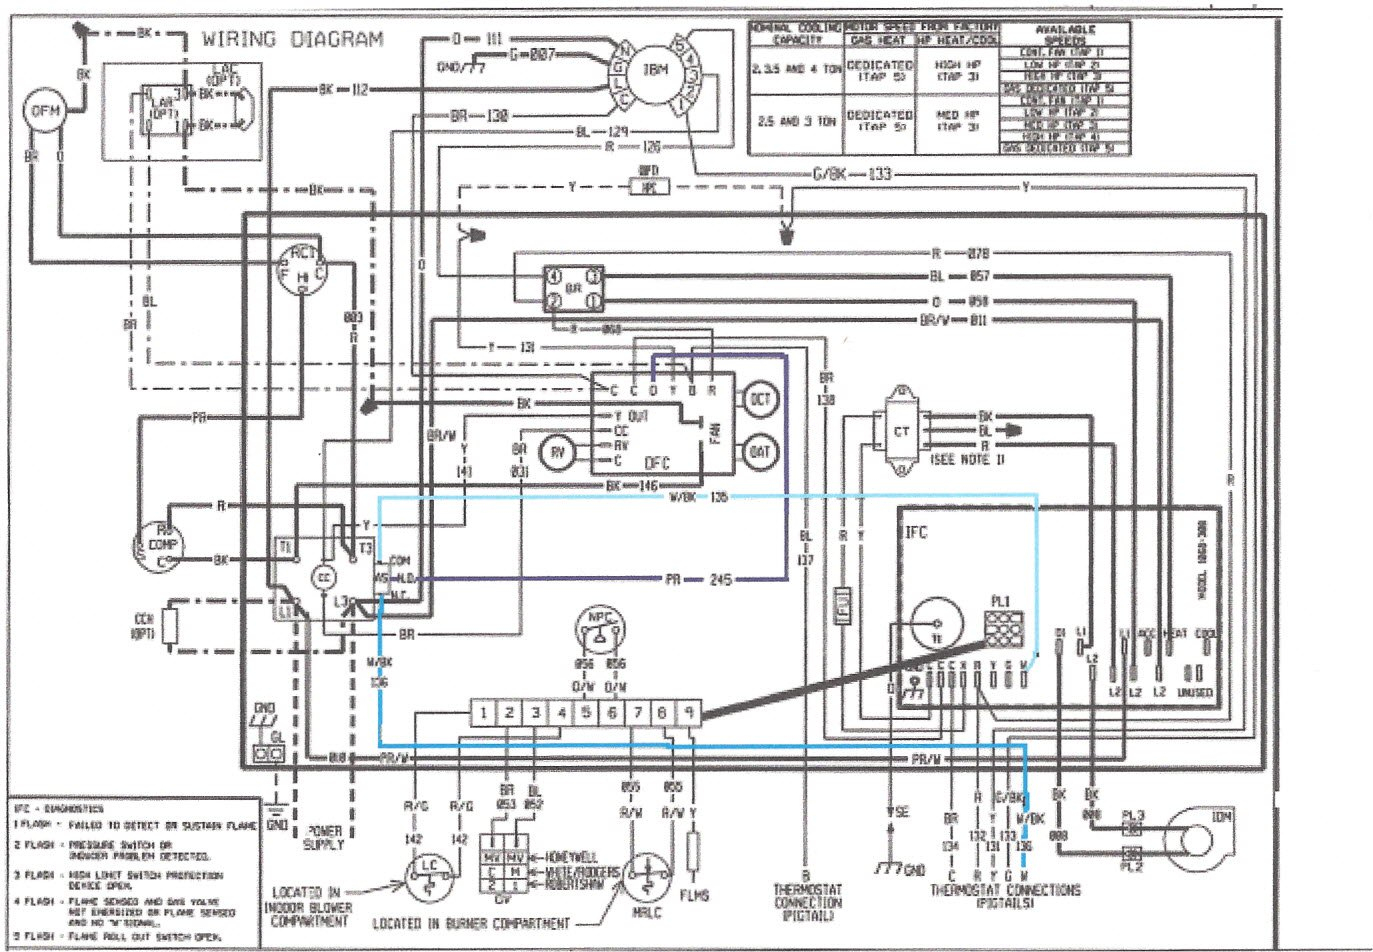 Rheem Heat Pump Thermostat Wiring Diagram | Wiring Diagram - Weatherking Heat Pump Wiring Diagram For Nest 2